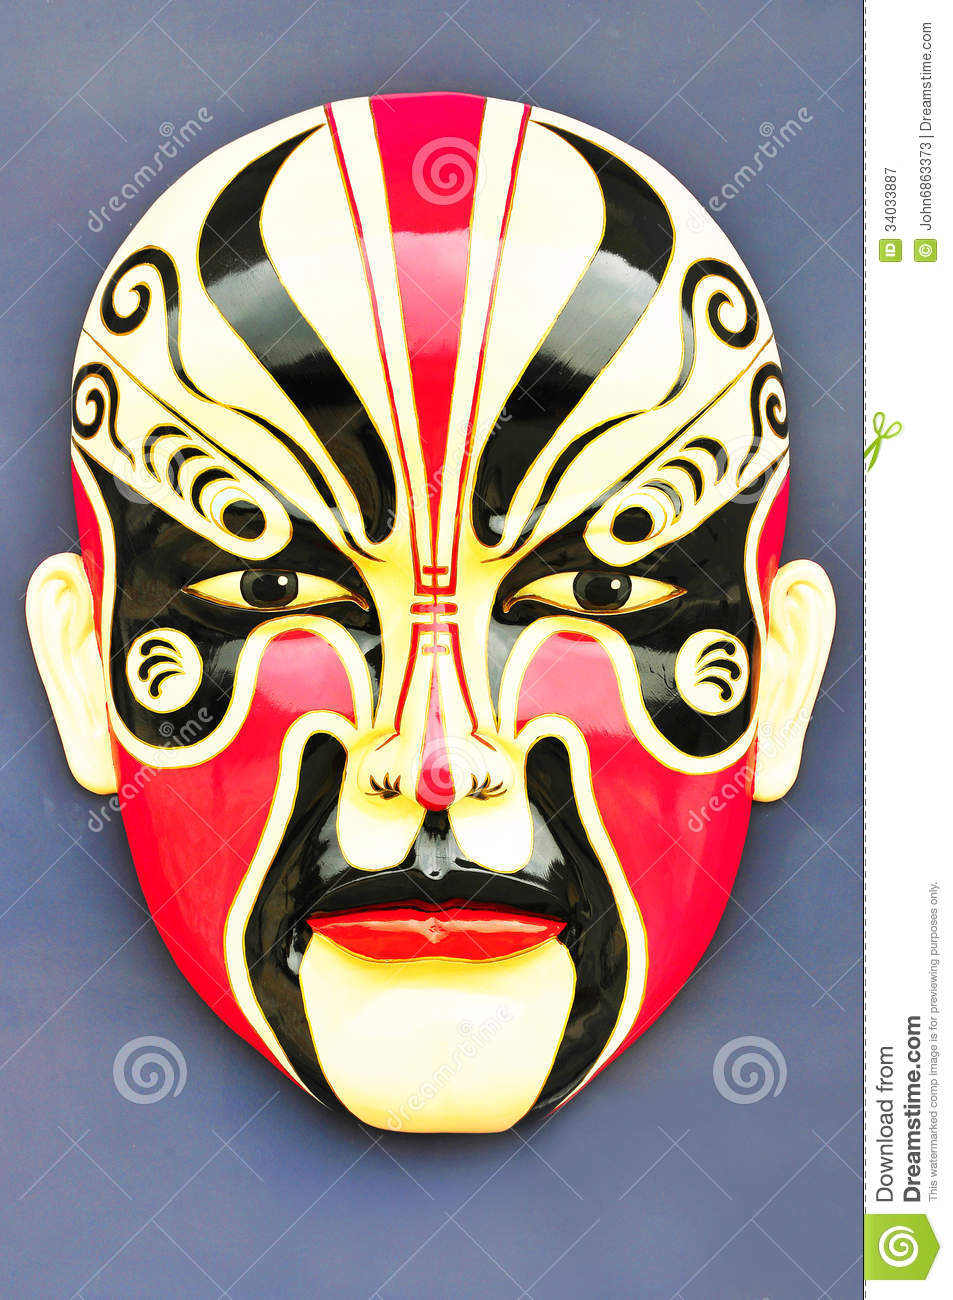 Pin Traditional-chinese-masks-image-search-results on ...